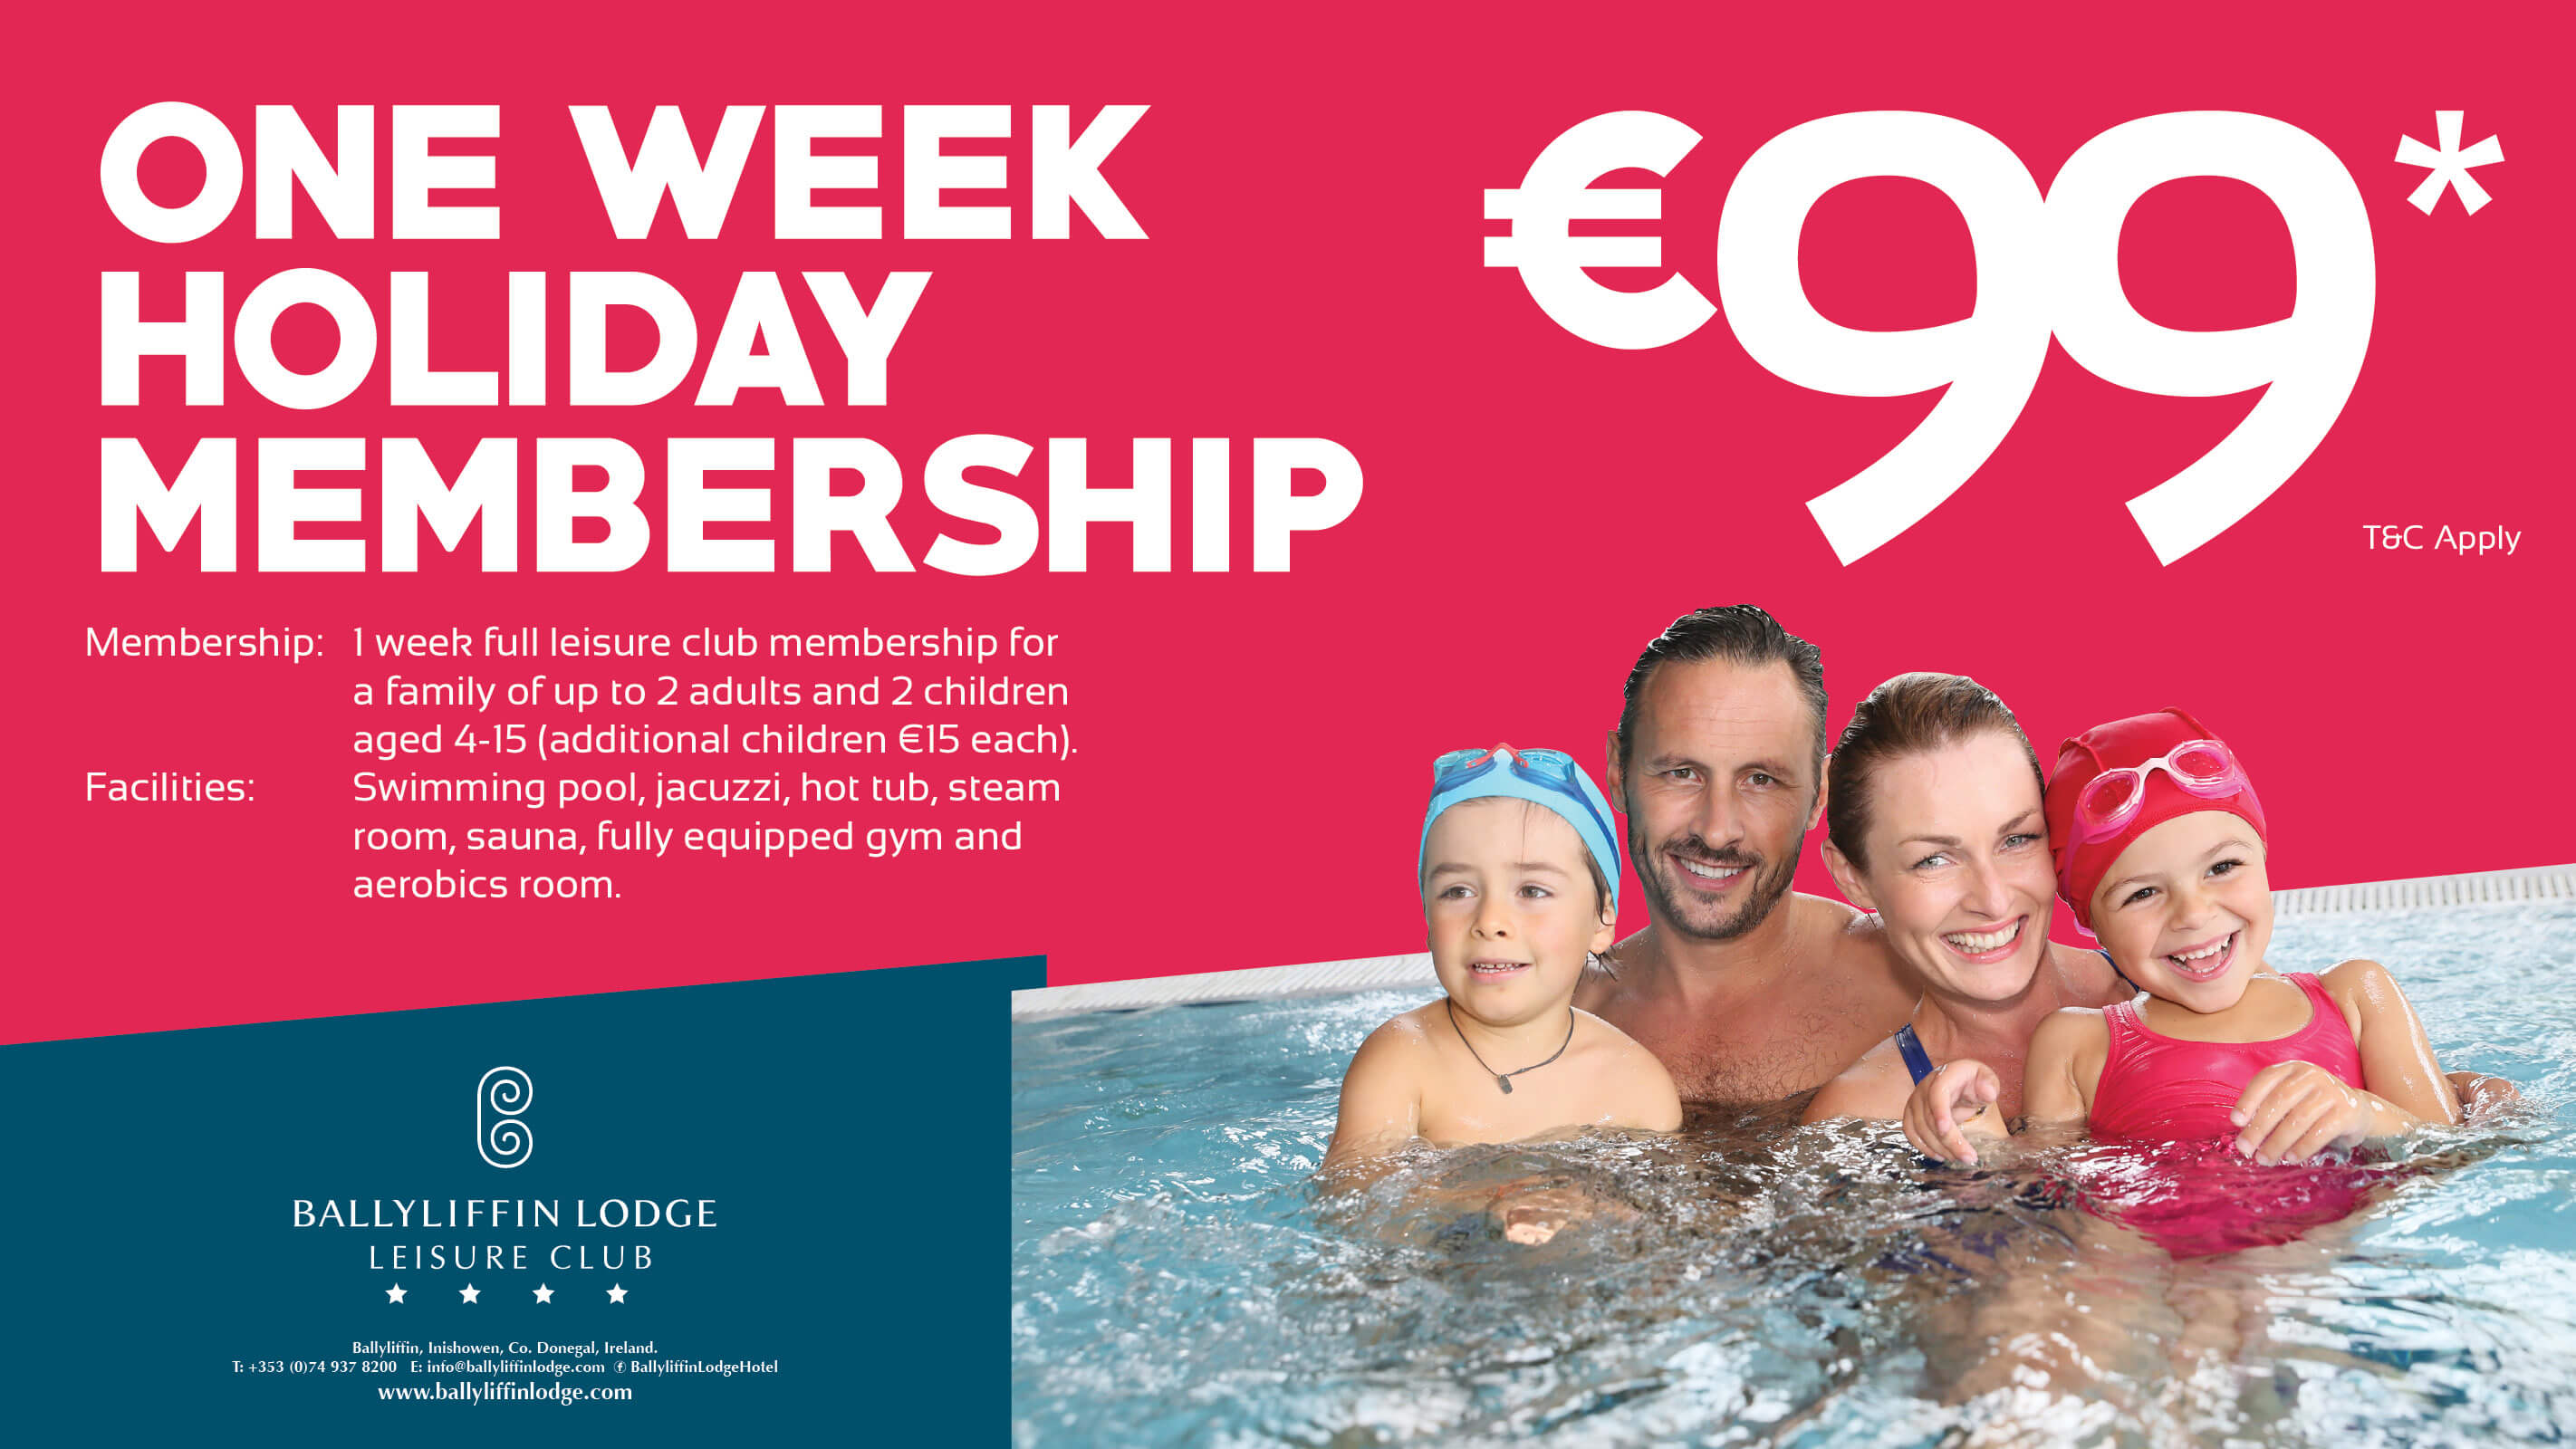 Ballyliffin Lodge - One Week Holiday Leisure Membership